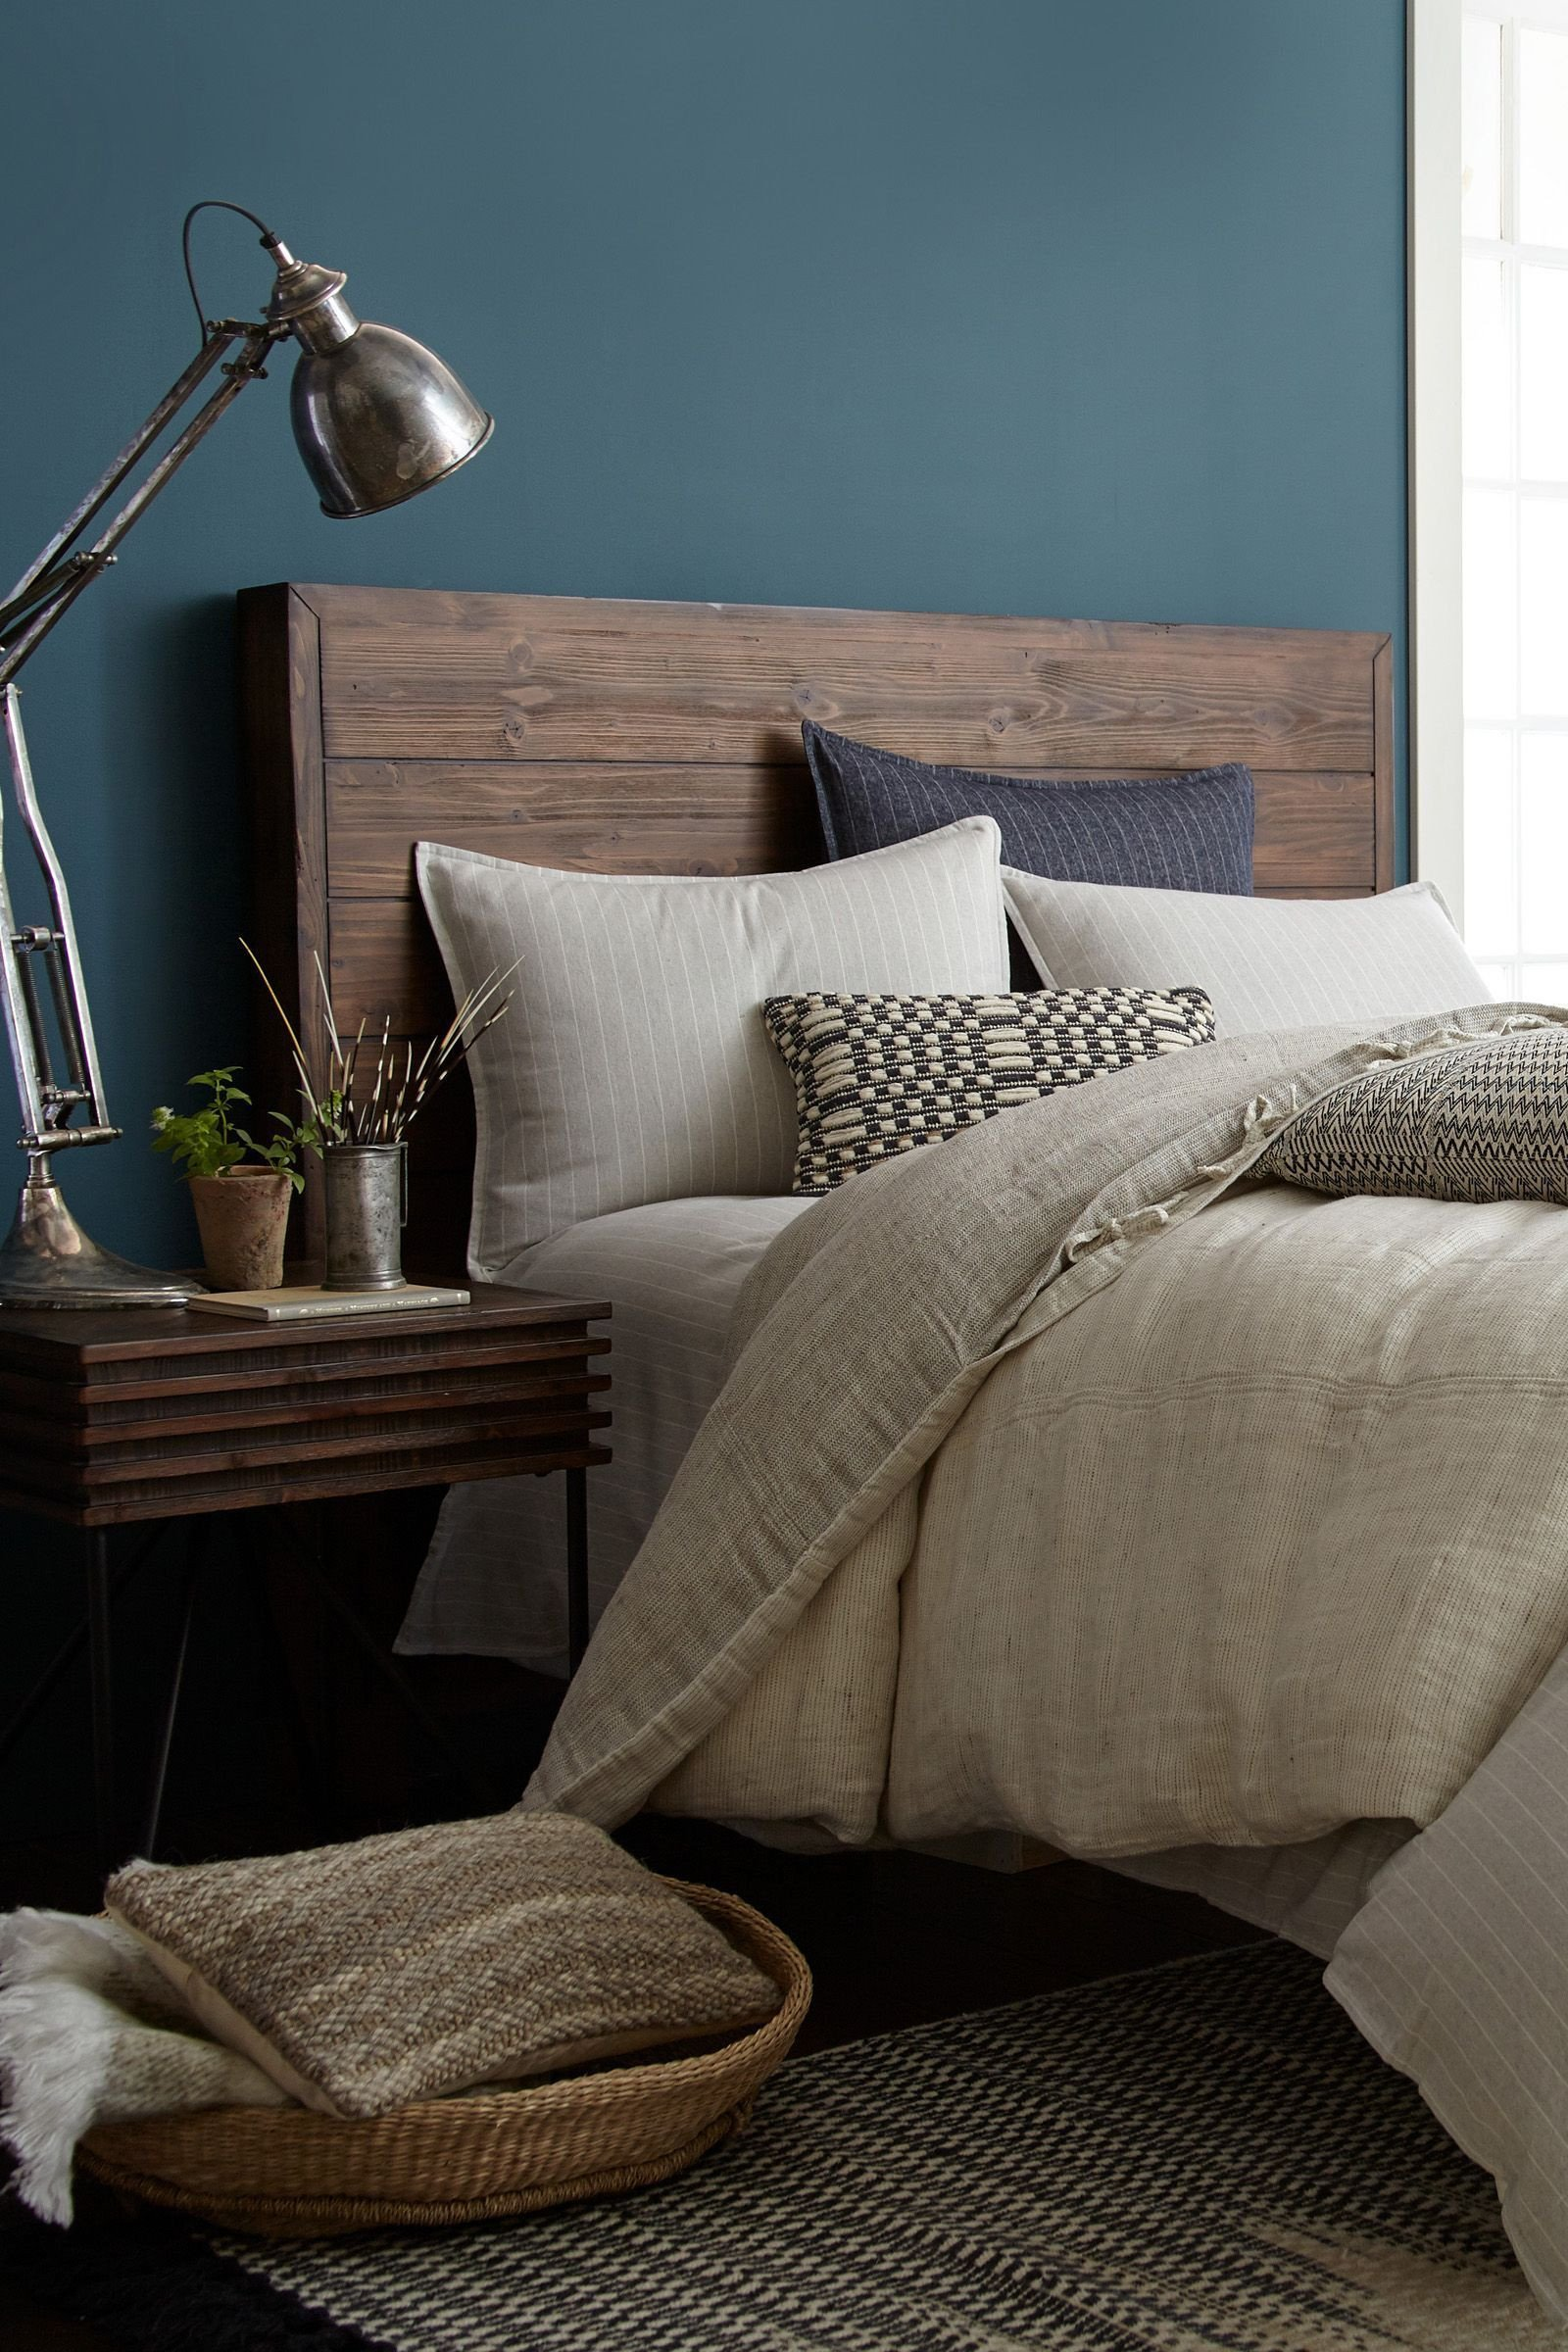 Teal and Gray Bedroom Beautiful 99 Best Bedroom Paint Color Design Ideas for Inspiration